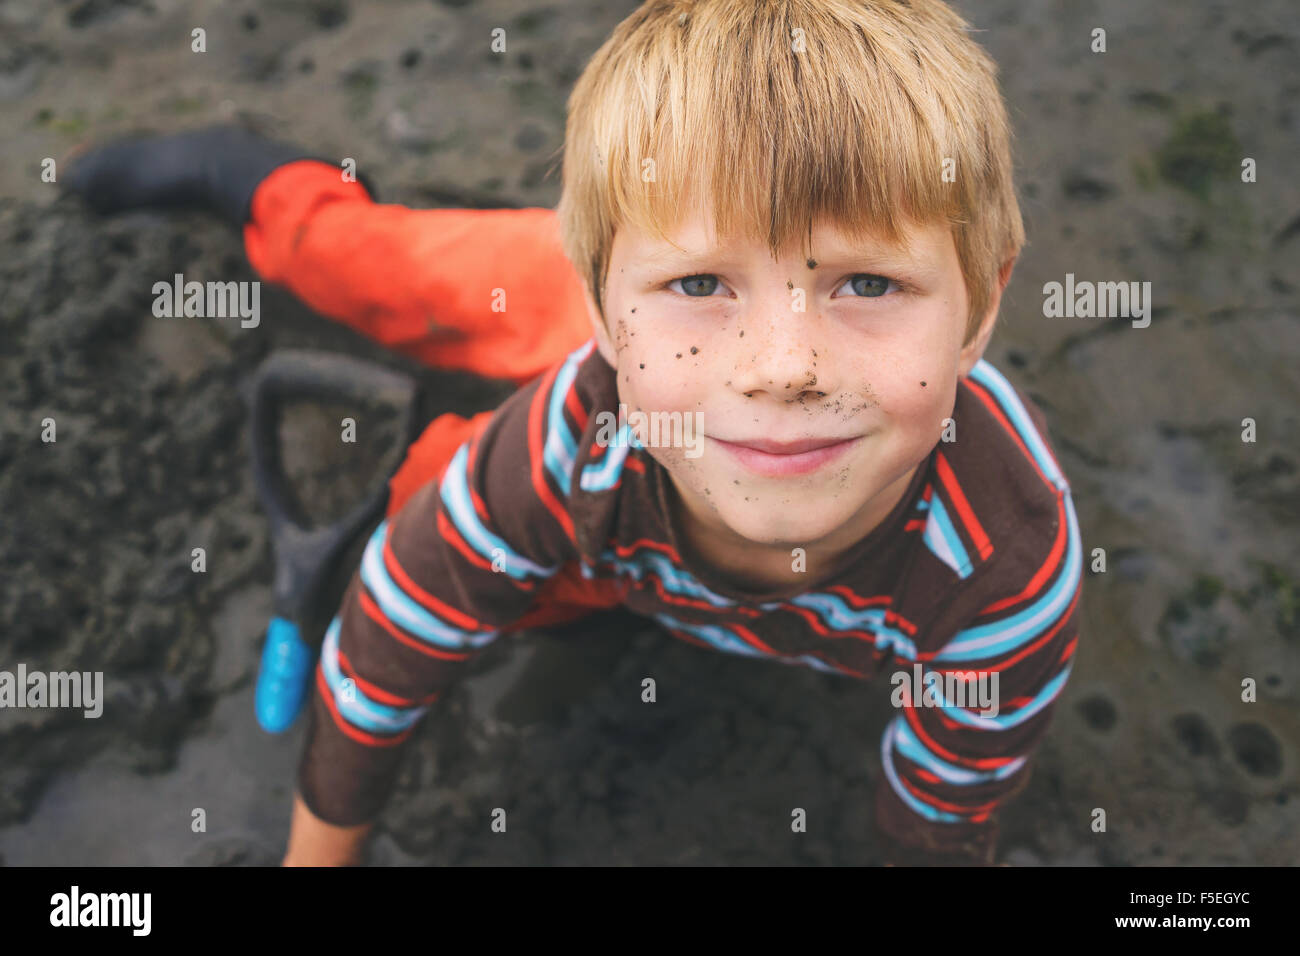 Portrait of a boy digging for clams in wet sand - Stock Image